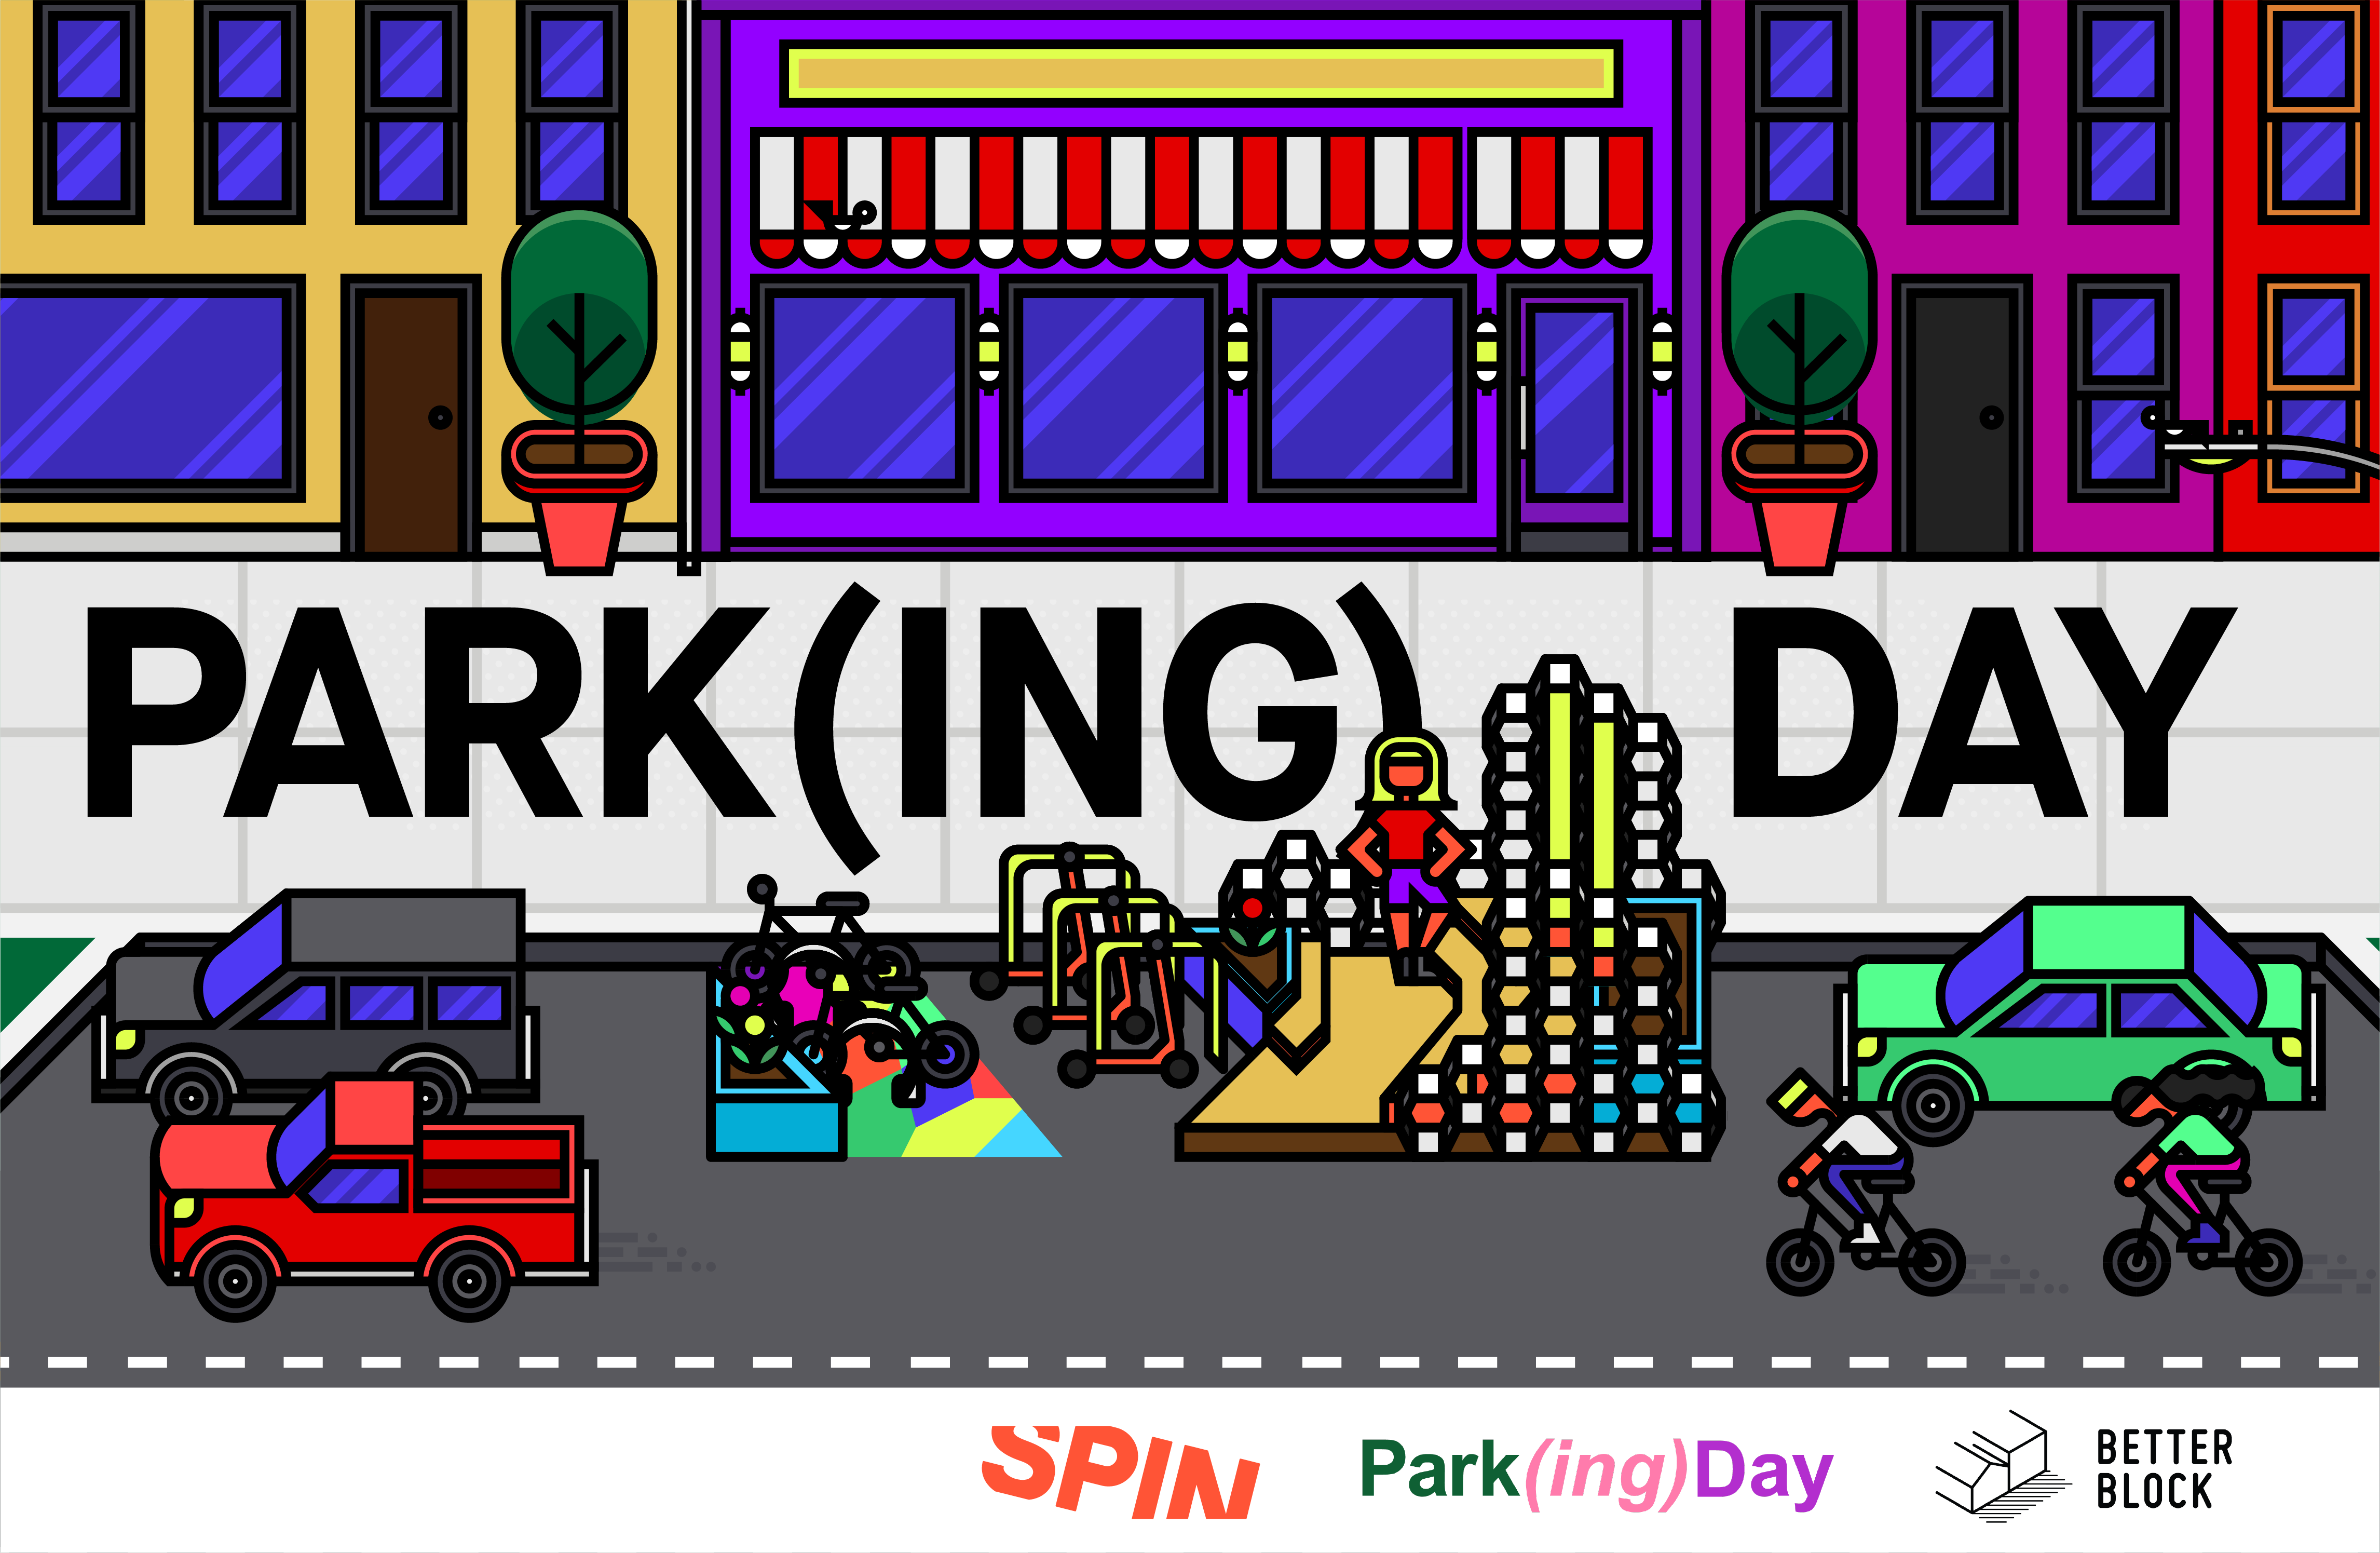 A cartoon rendering of a streetscape with a parklet in a parking space. The words Parking Day are written on the sidewalk.